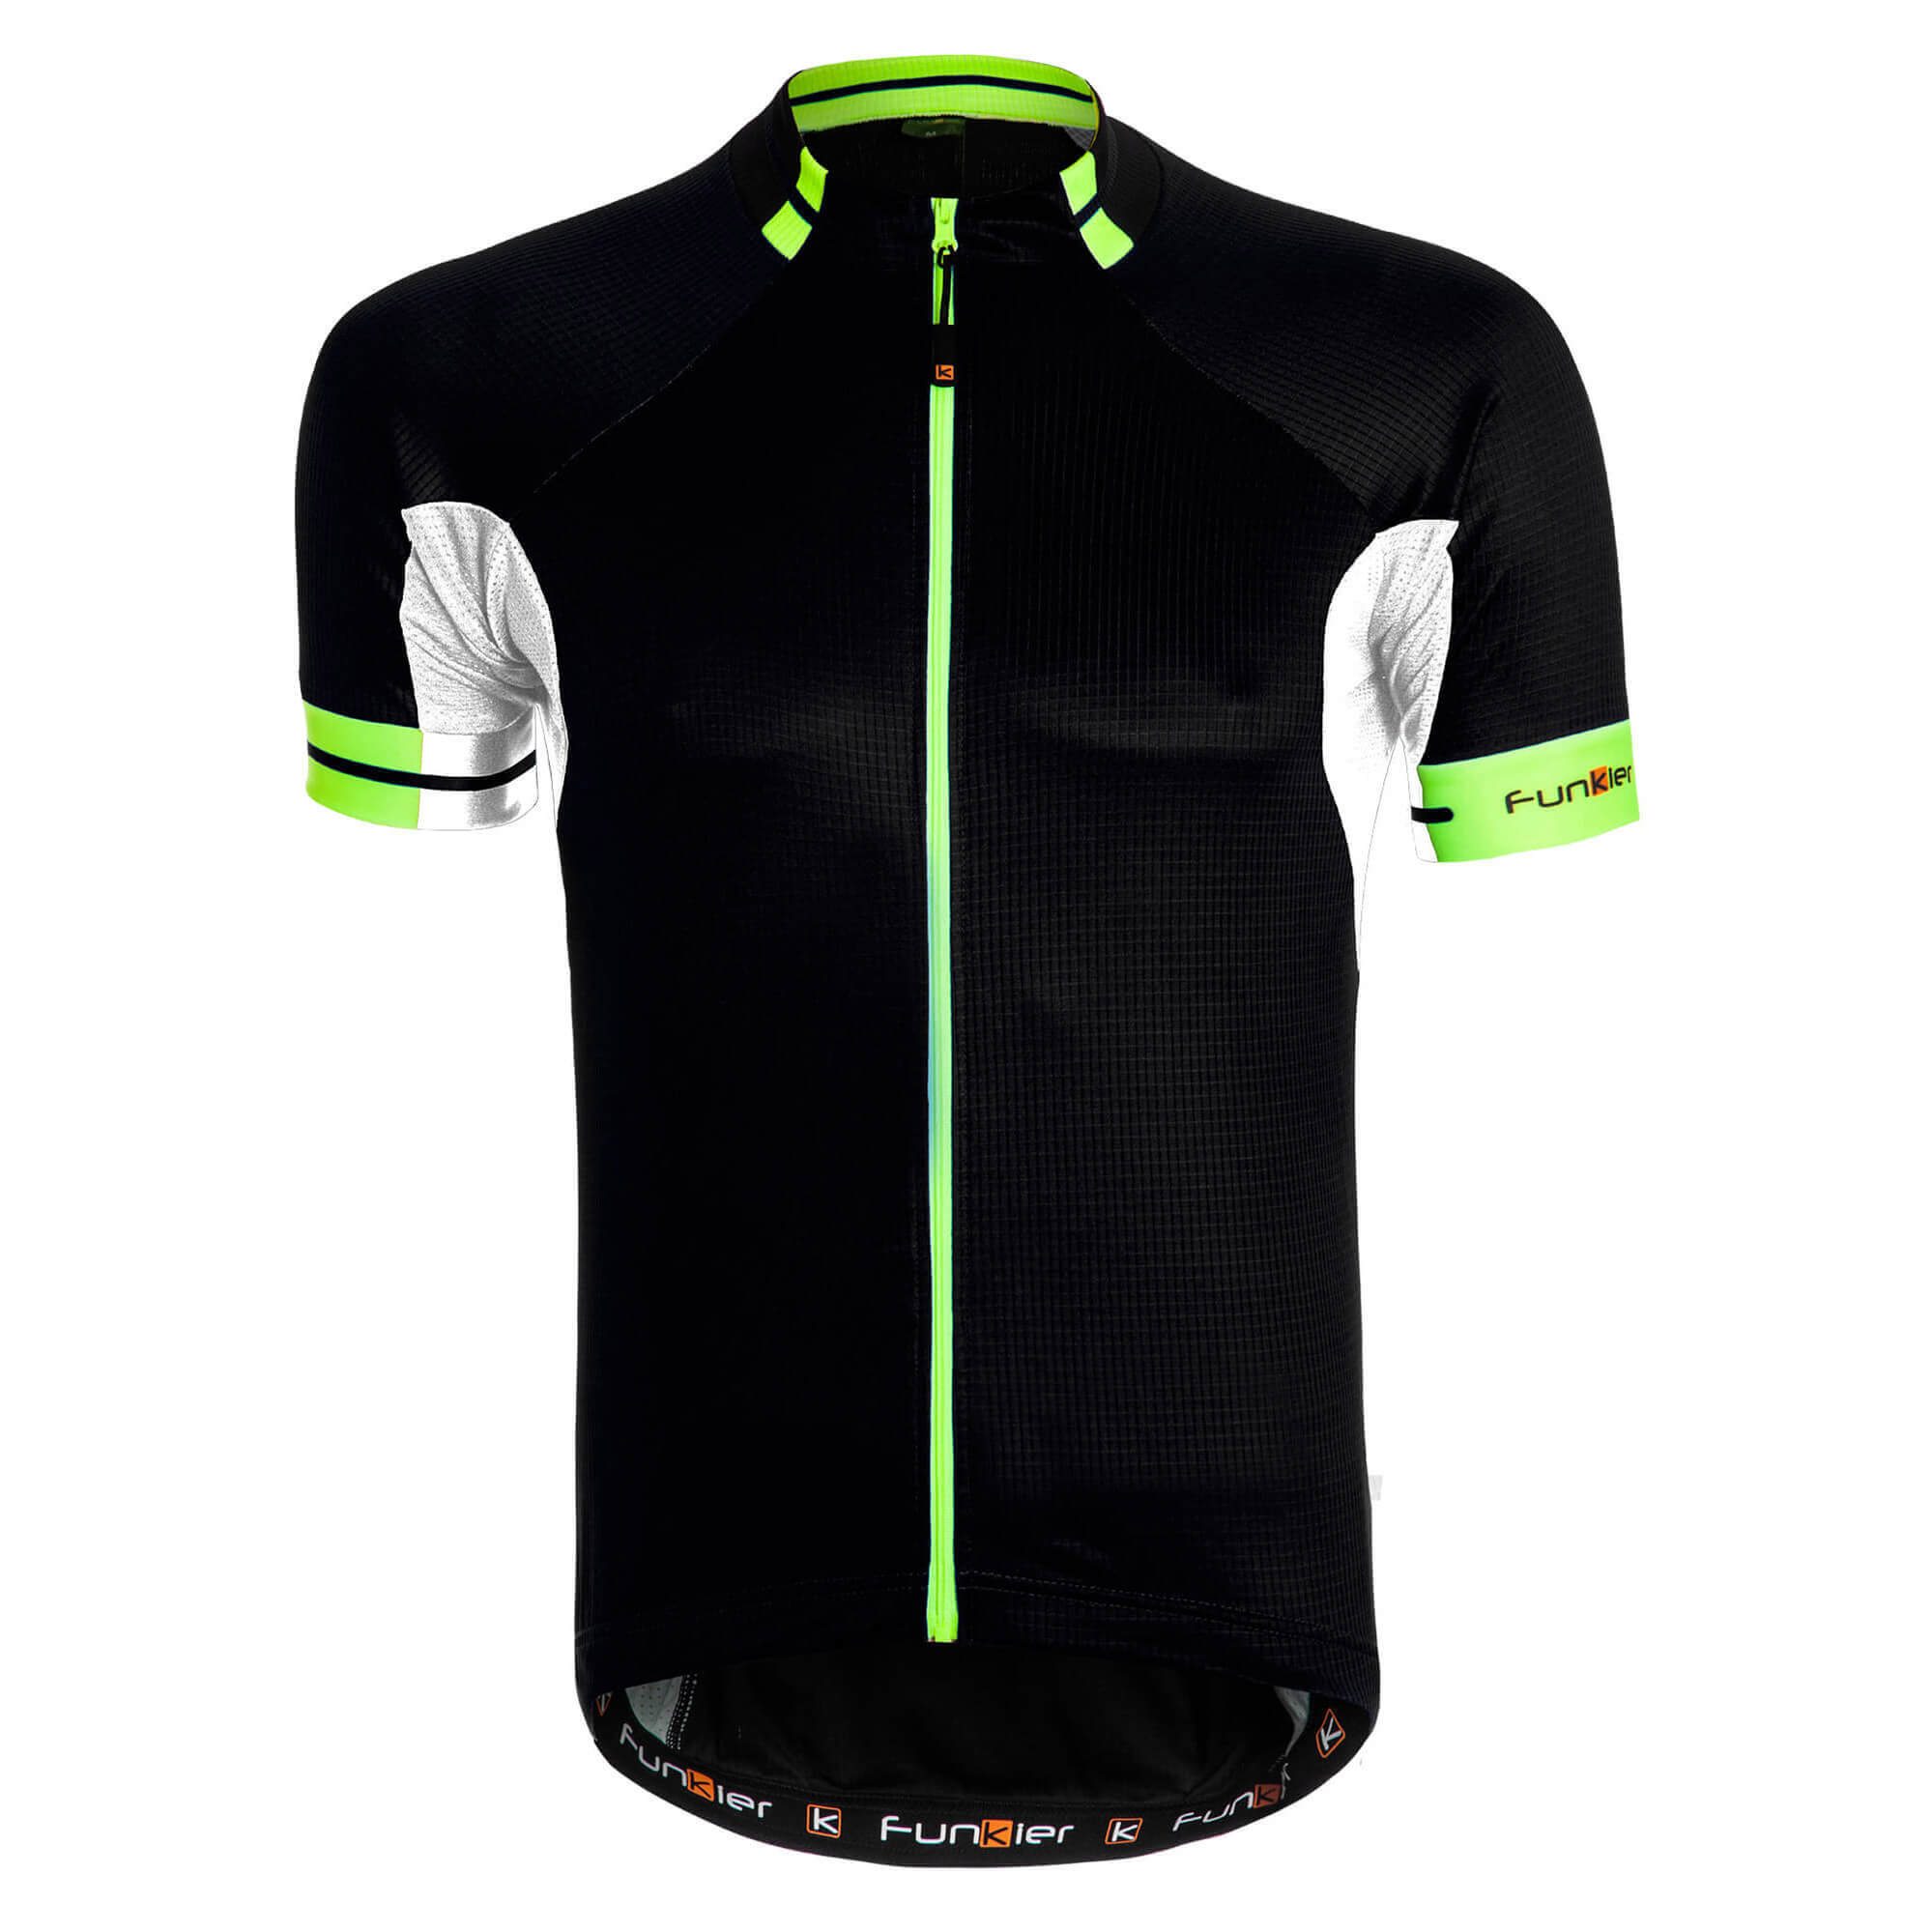 Funkier - High performance cycling apparel at an affordable price. 753ae6880